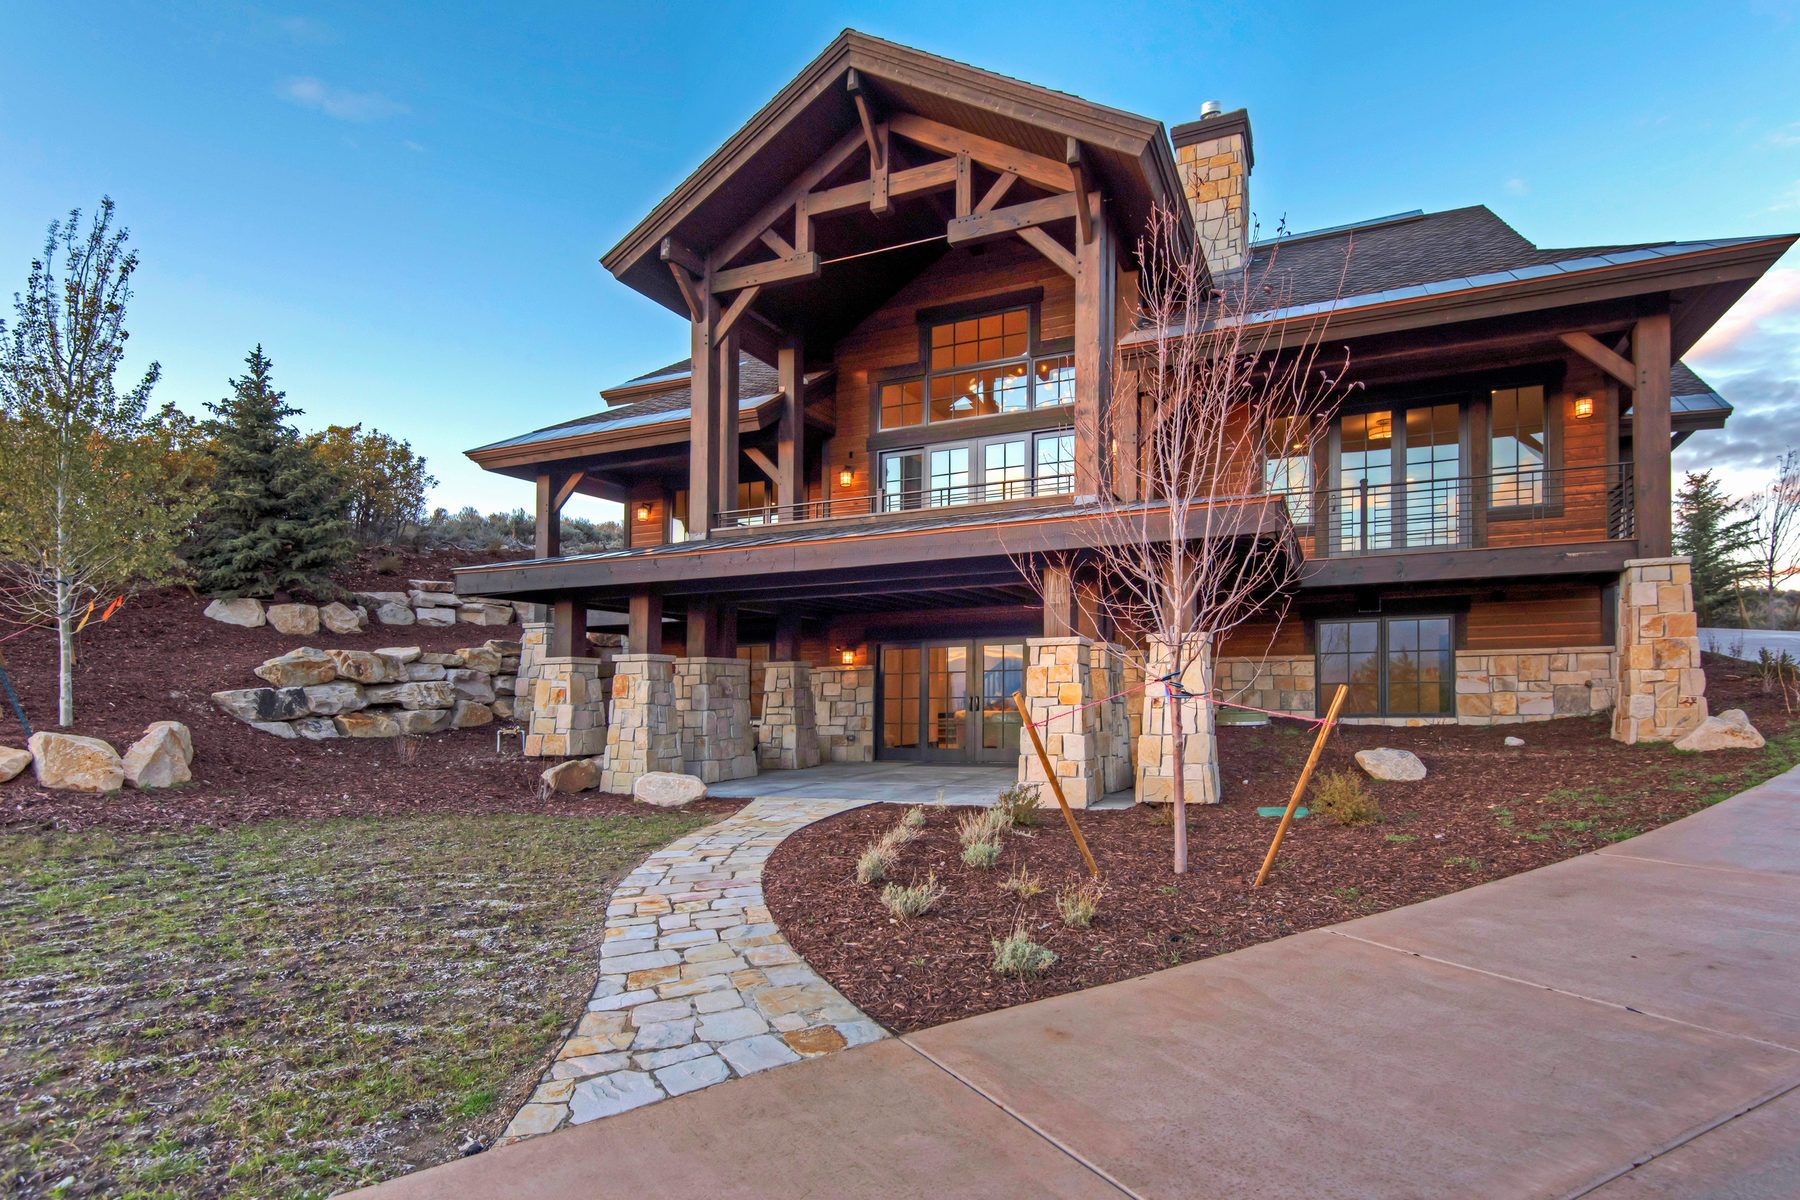 Maison unifamiliale pour l Vente à Gorgeous South Facing Home in Promontory 8936 N Mountain Crest Rd Park City, Utah, 84098 États-Unis